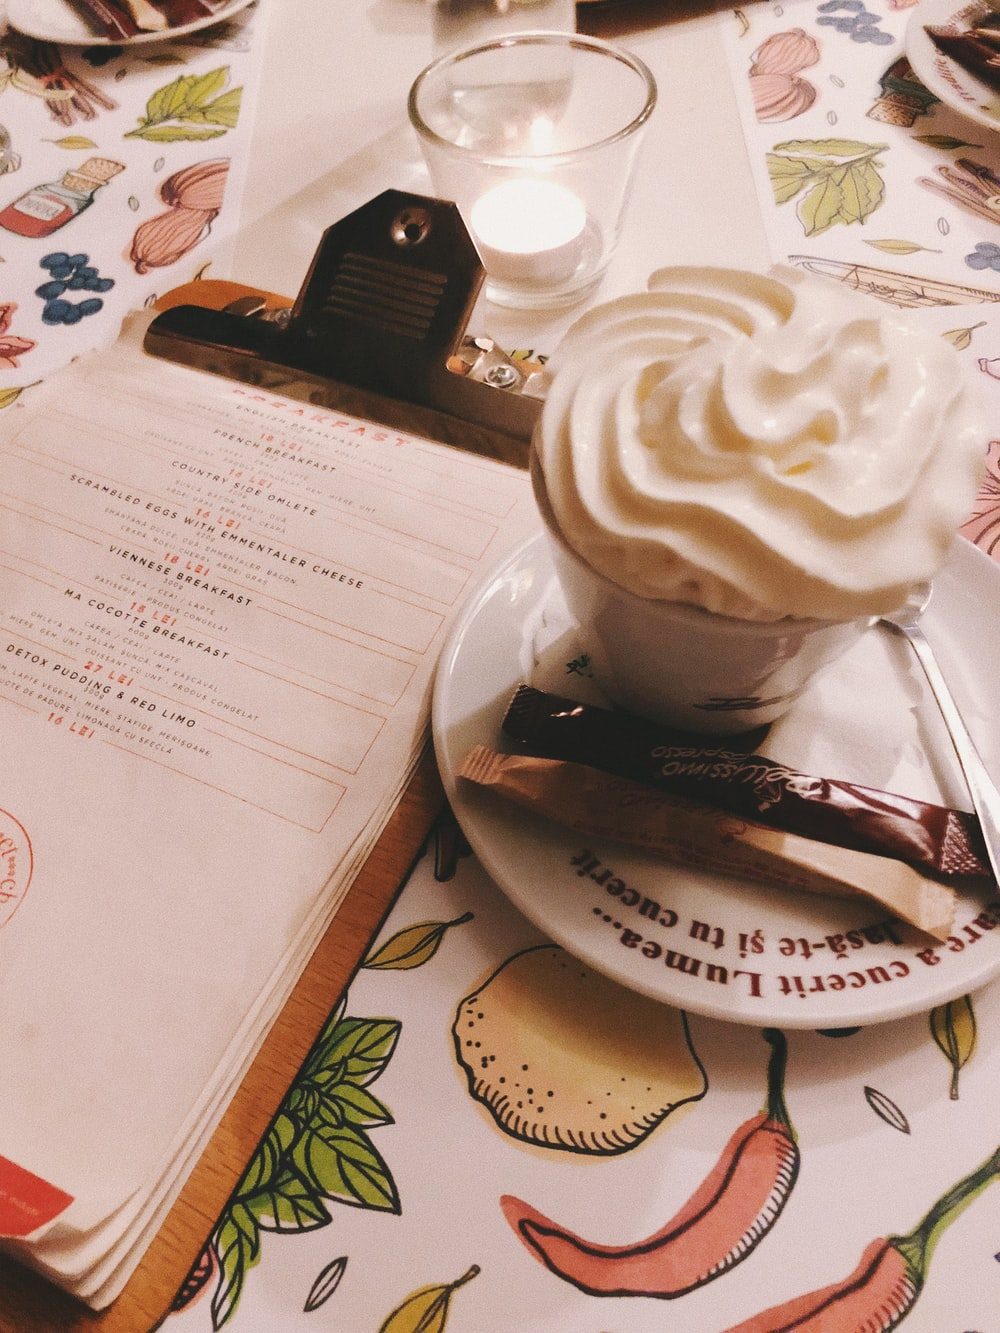 paper on clipboard beside cream in cup